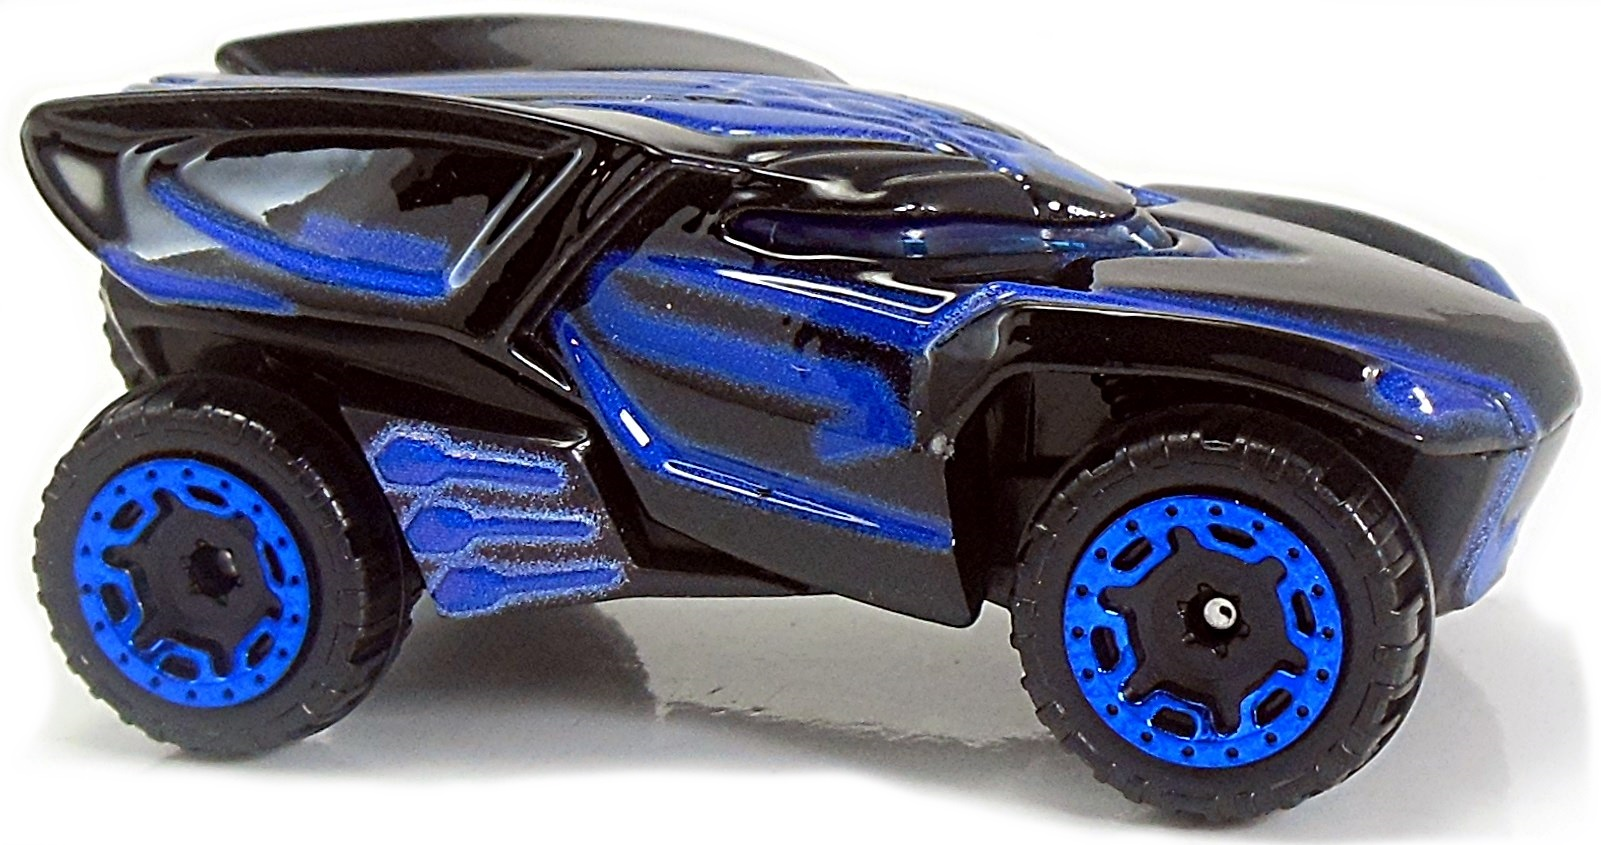 panther cars marvel character wheels movie wiki hotwheels wikia latest